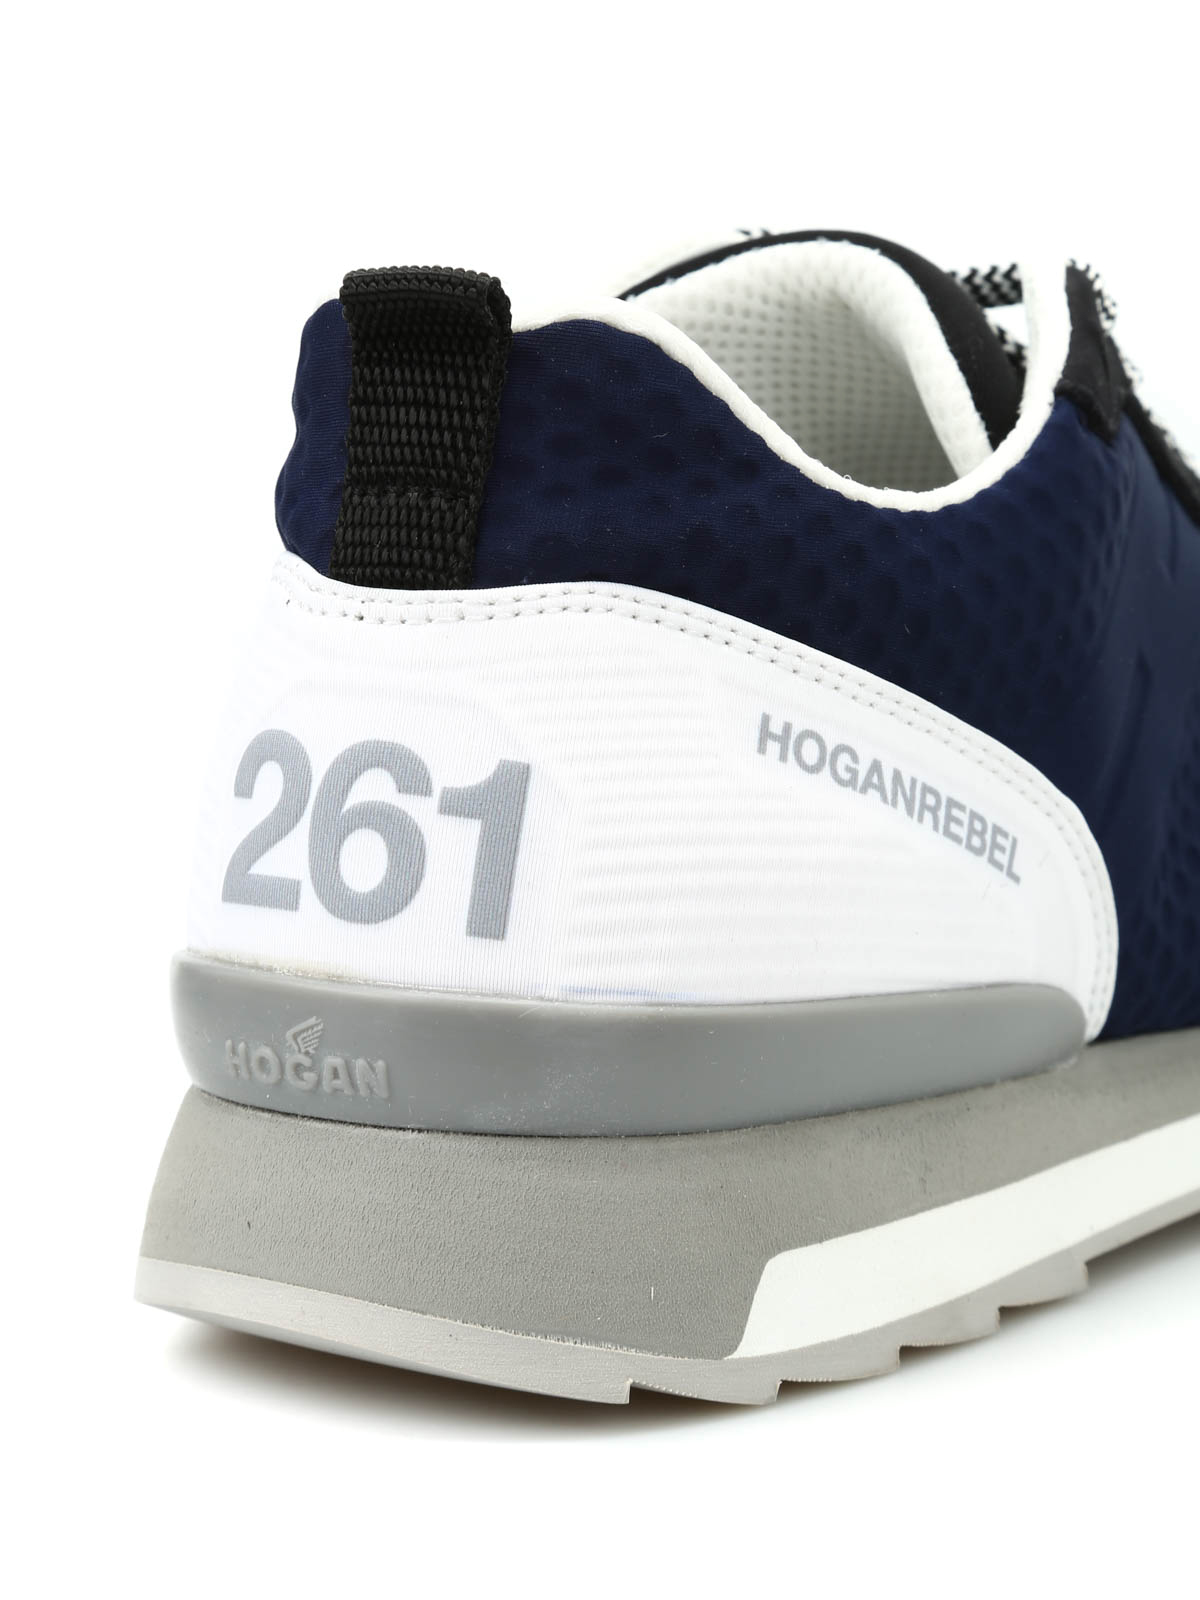 Alta qualit Sneaker Hogan Rebel R261 Running vendita